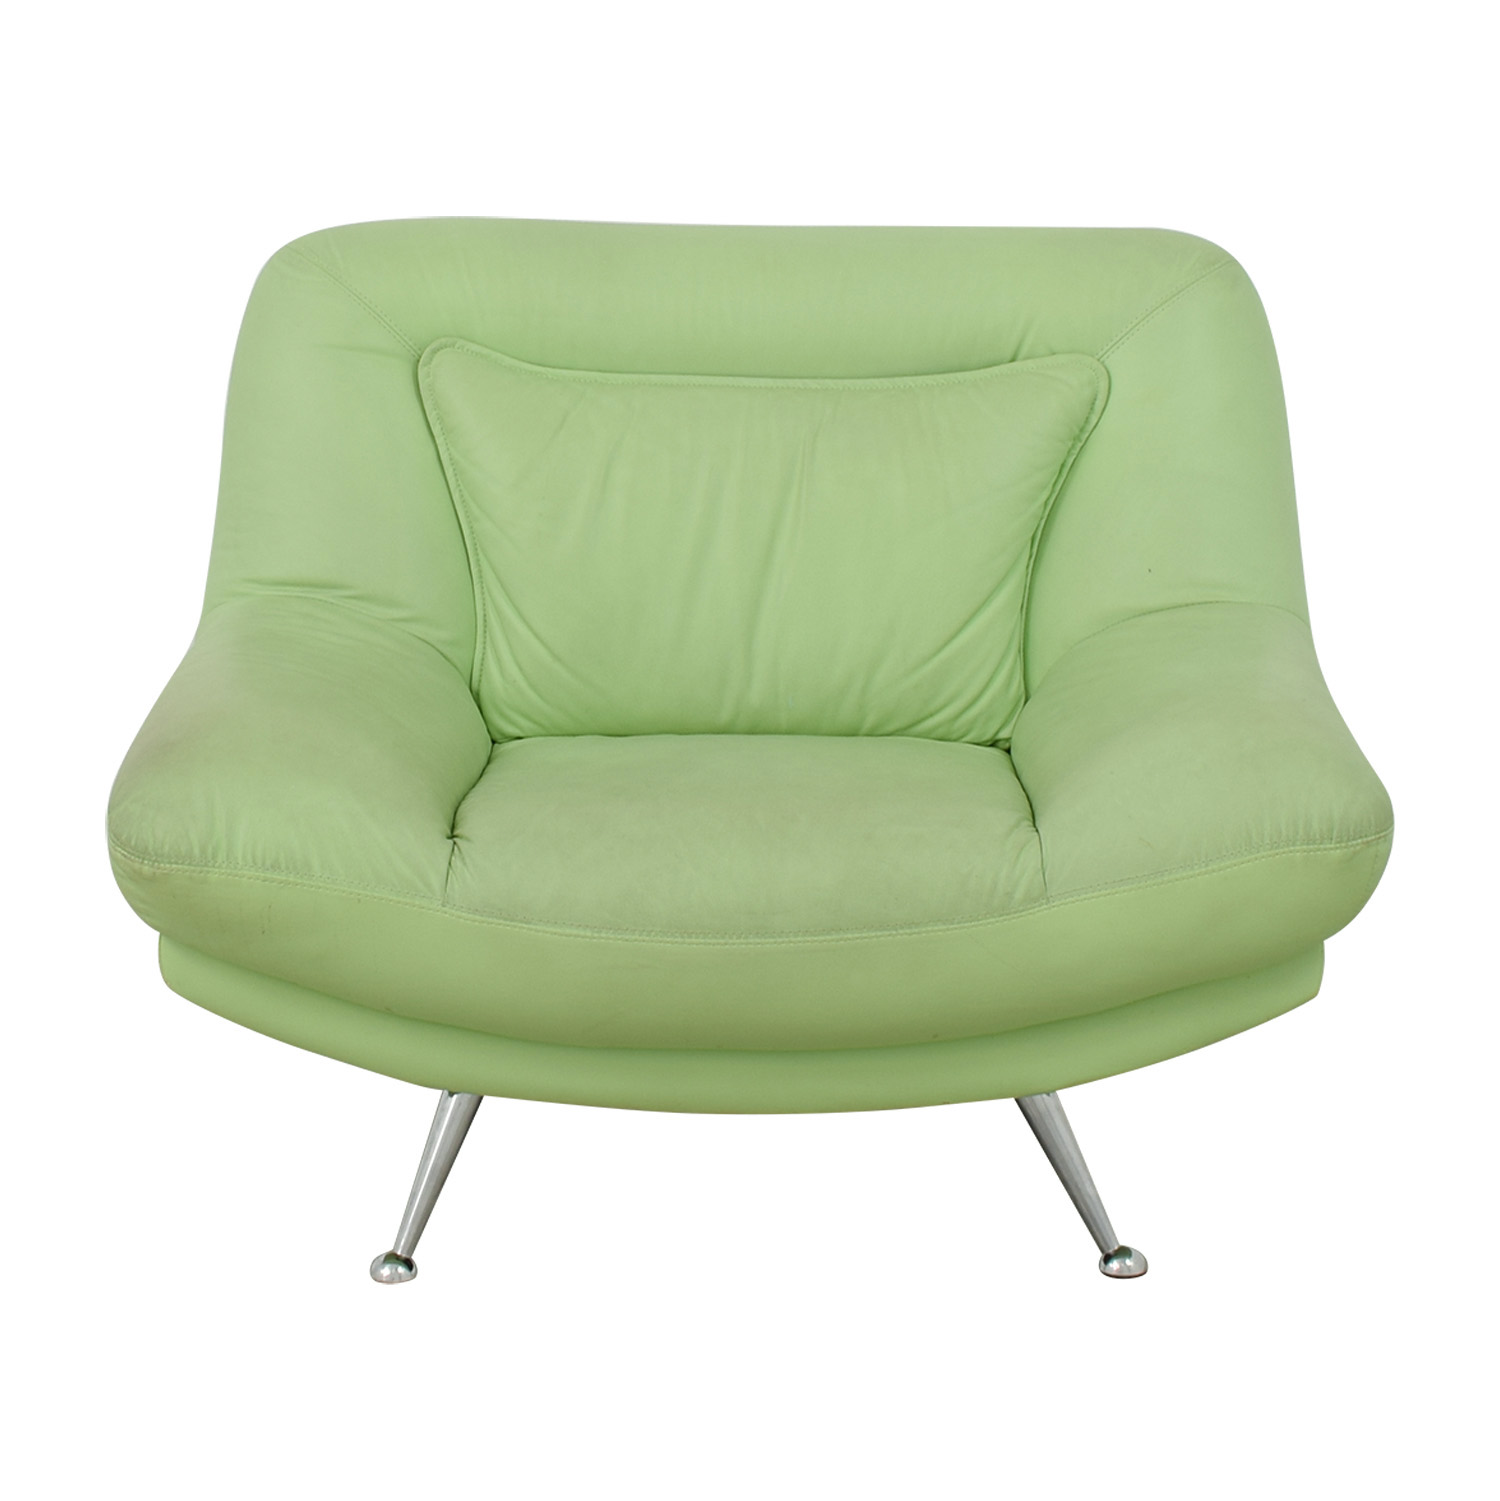 Italian Surf Green Leather Accent Chair / Accent Chairs